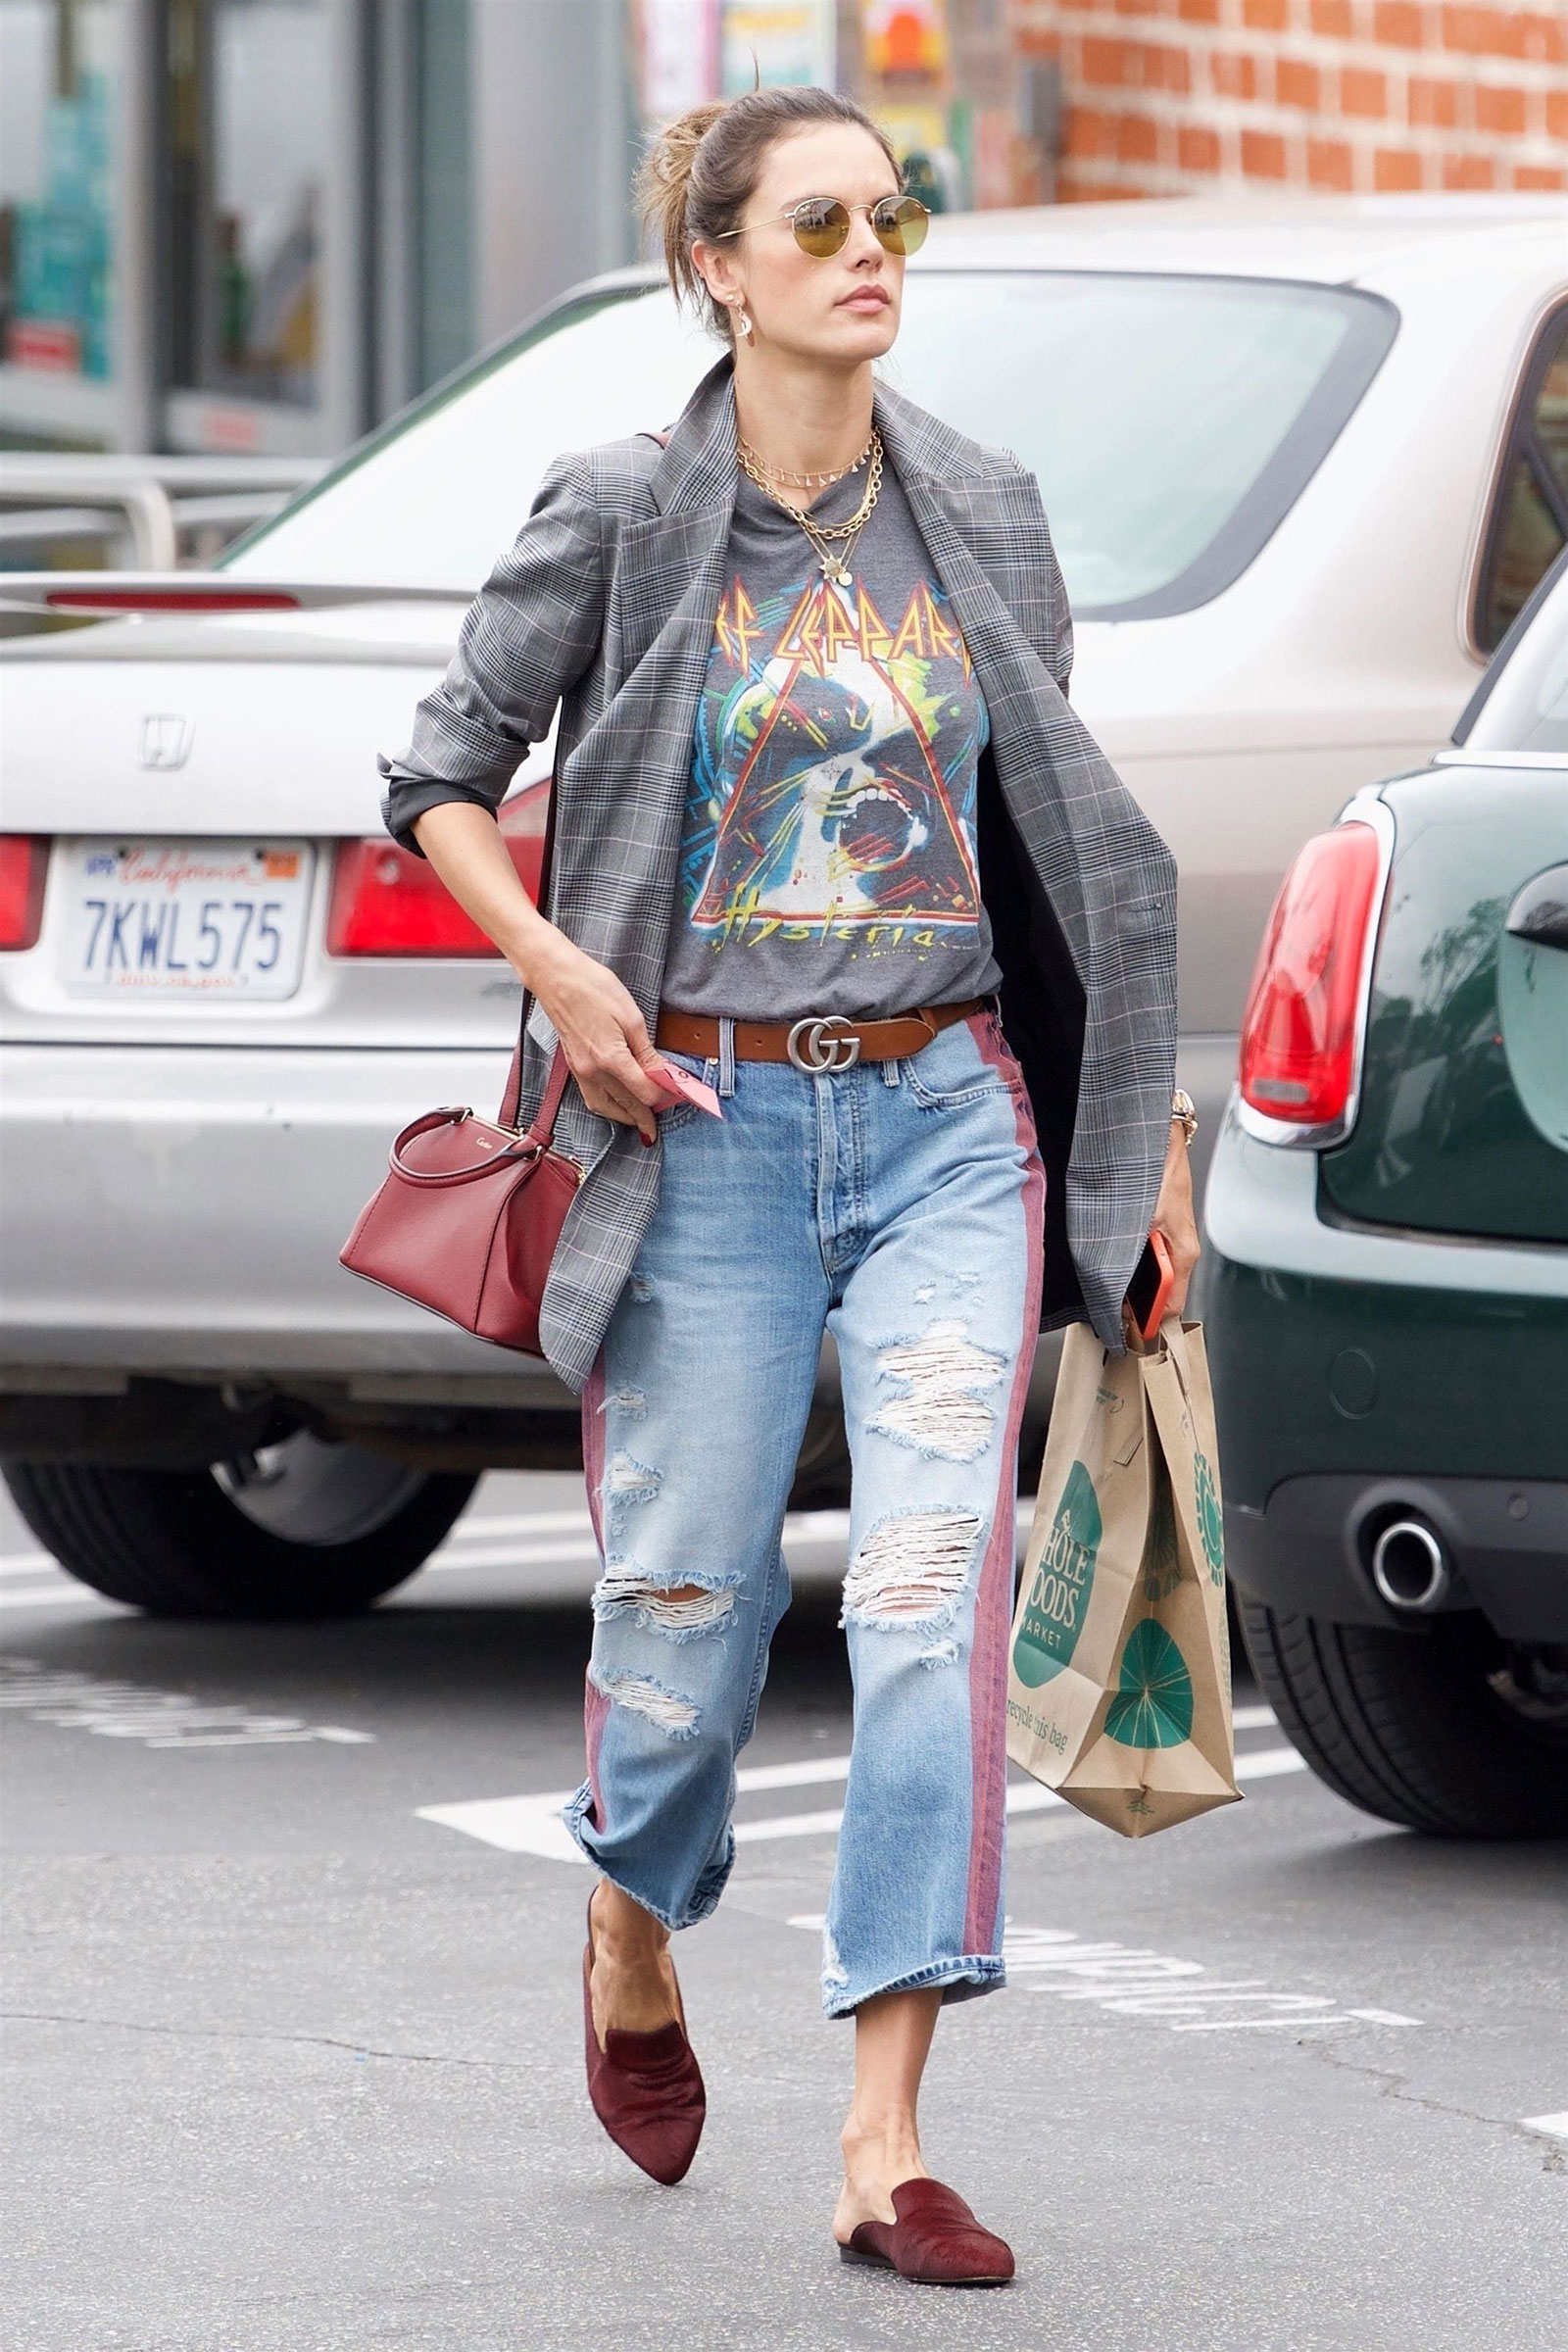 Alessandra Ambrosio's plaid blazer, band tee, Mother jeans, mules and Gucci belt look for less